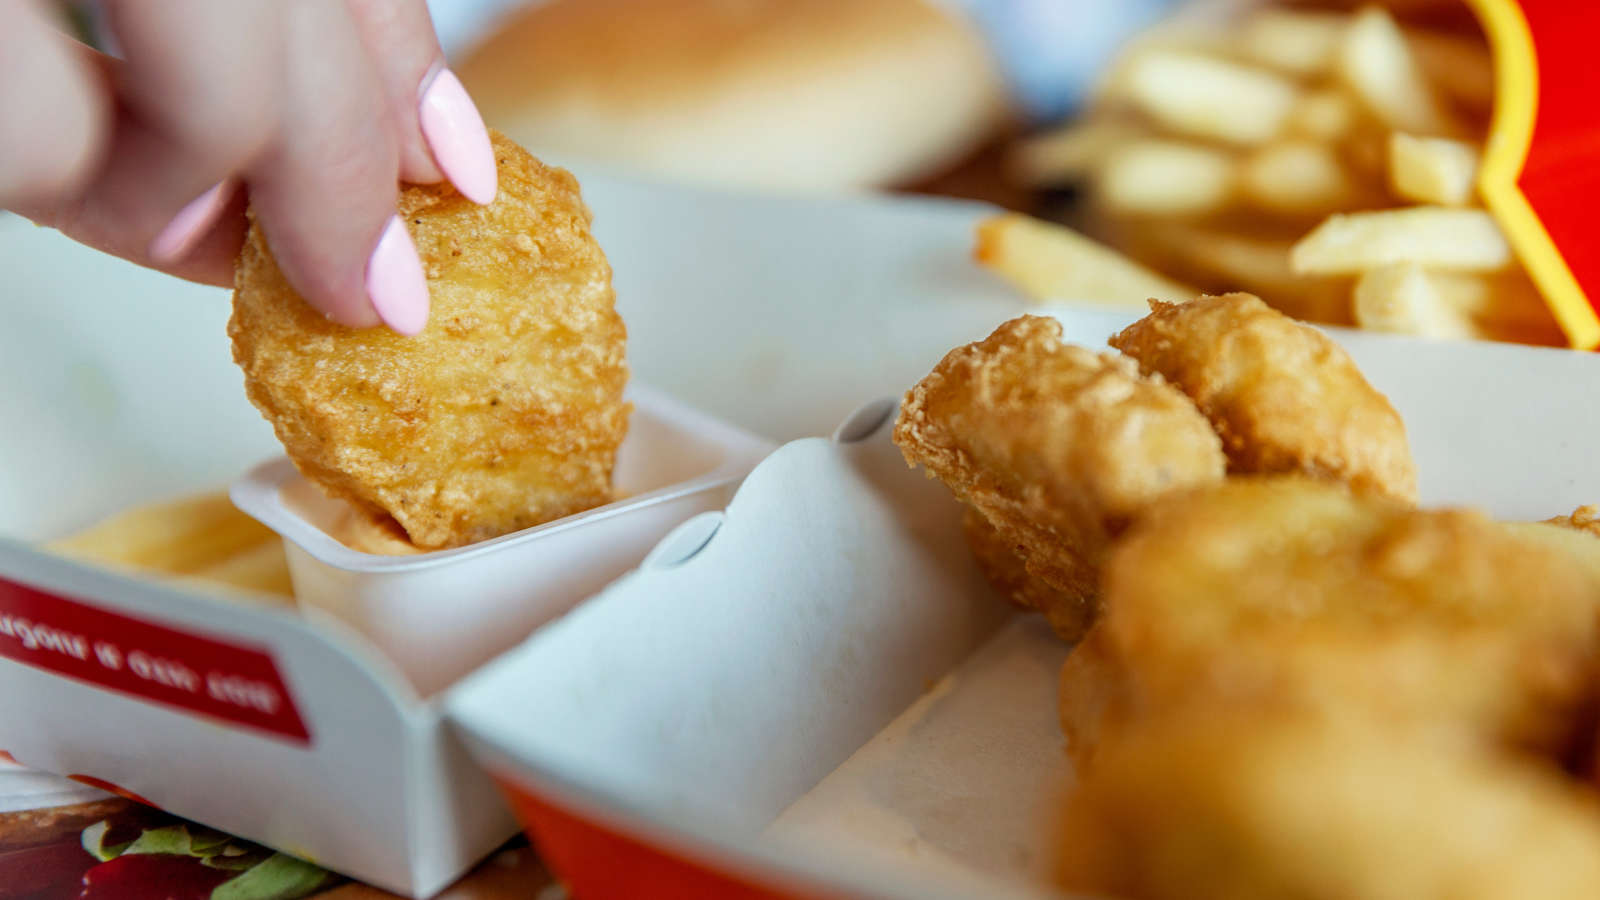 How to Get a Free Six-Piece Order of Chicken McNuggets Today